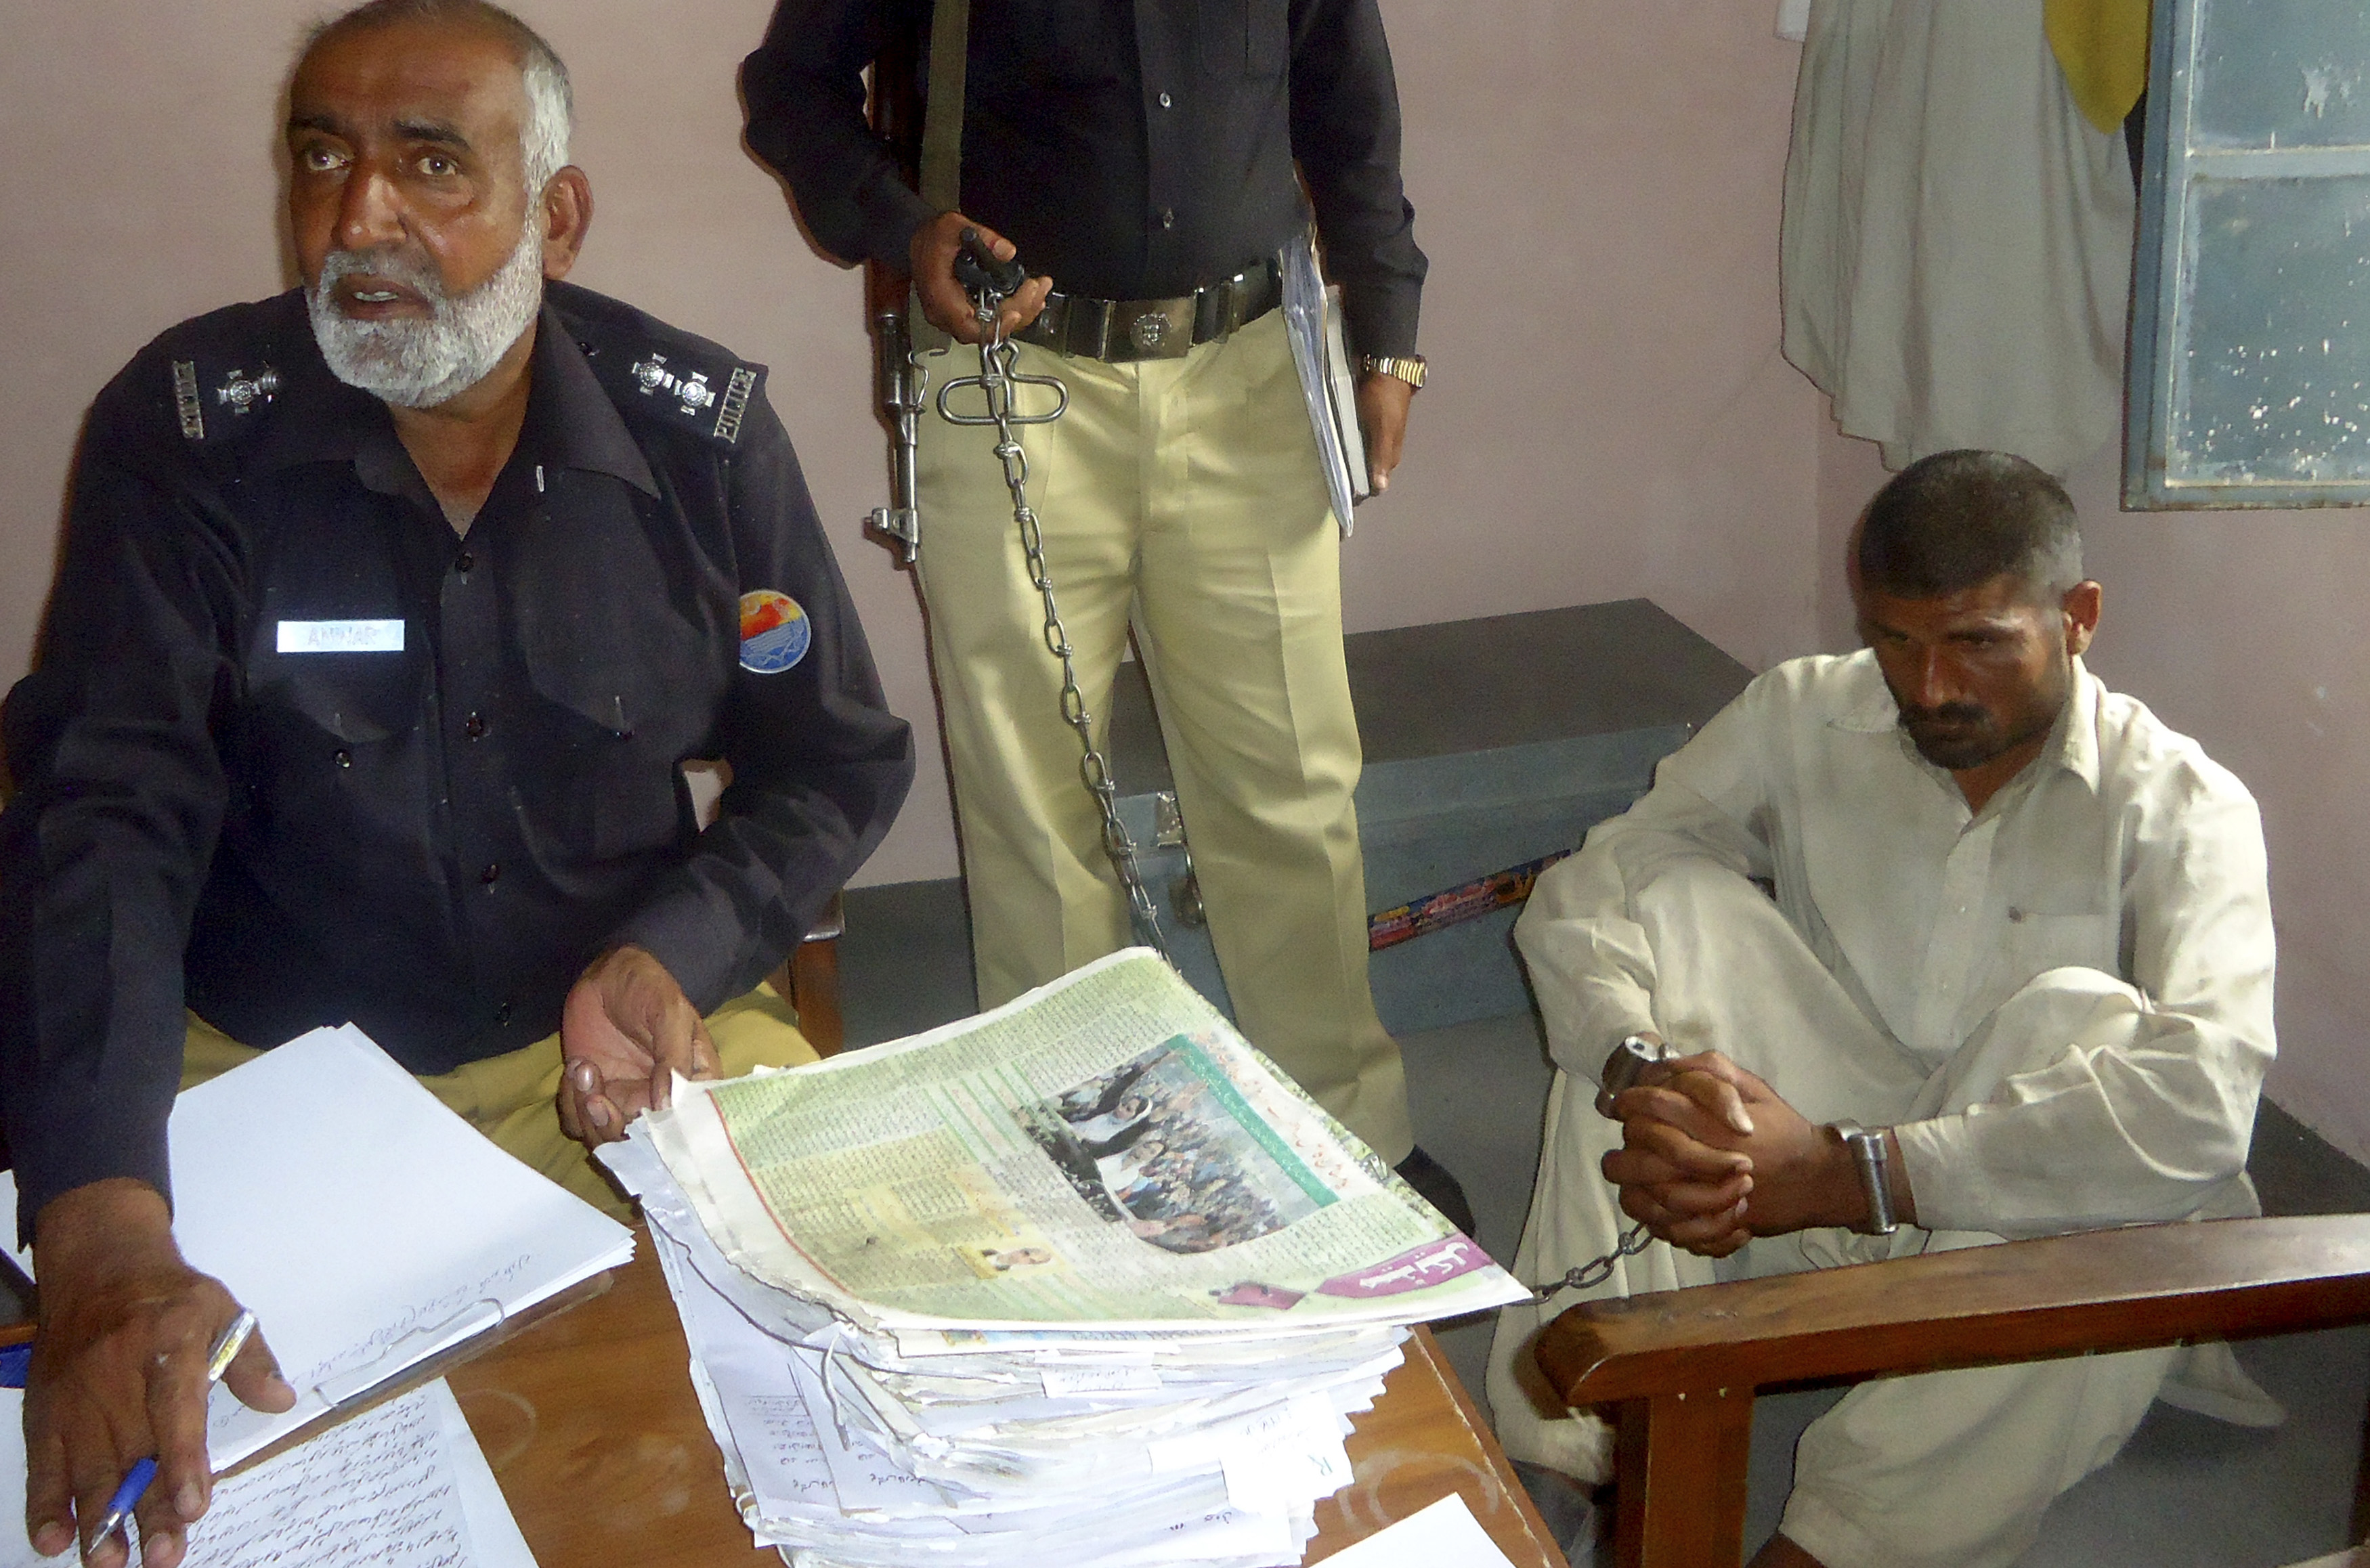 Mohammad Arif Ali, 35, right, sits in custody at a police station in the town of Darya Khan in Bhakkar district, Pakistan's Punjab province, on April 14, 2014.